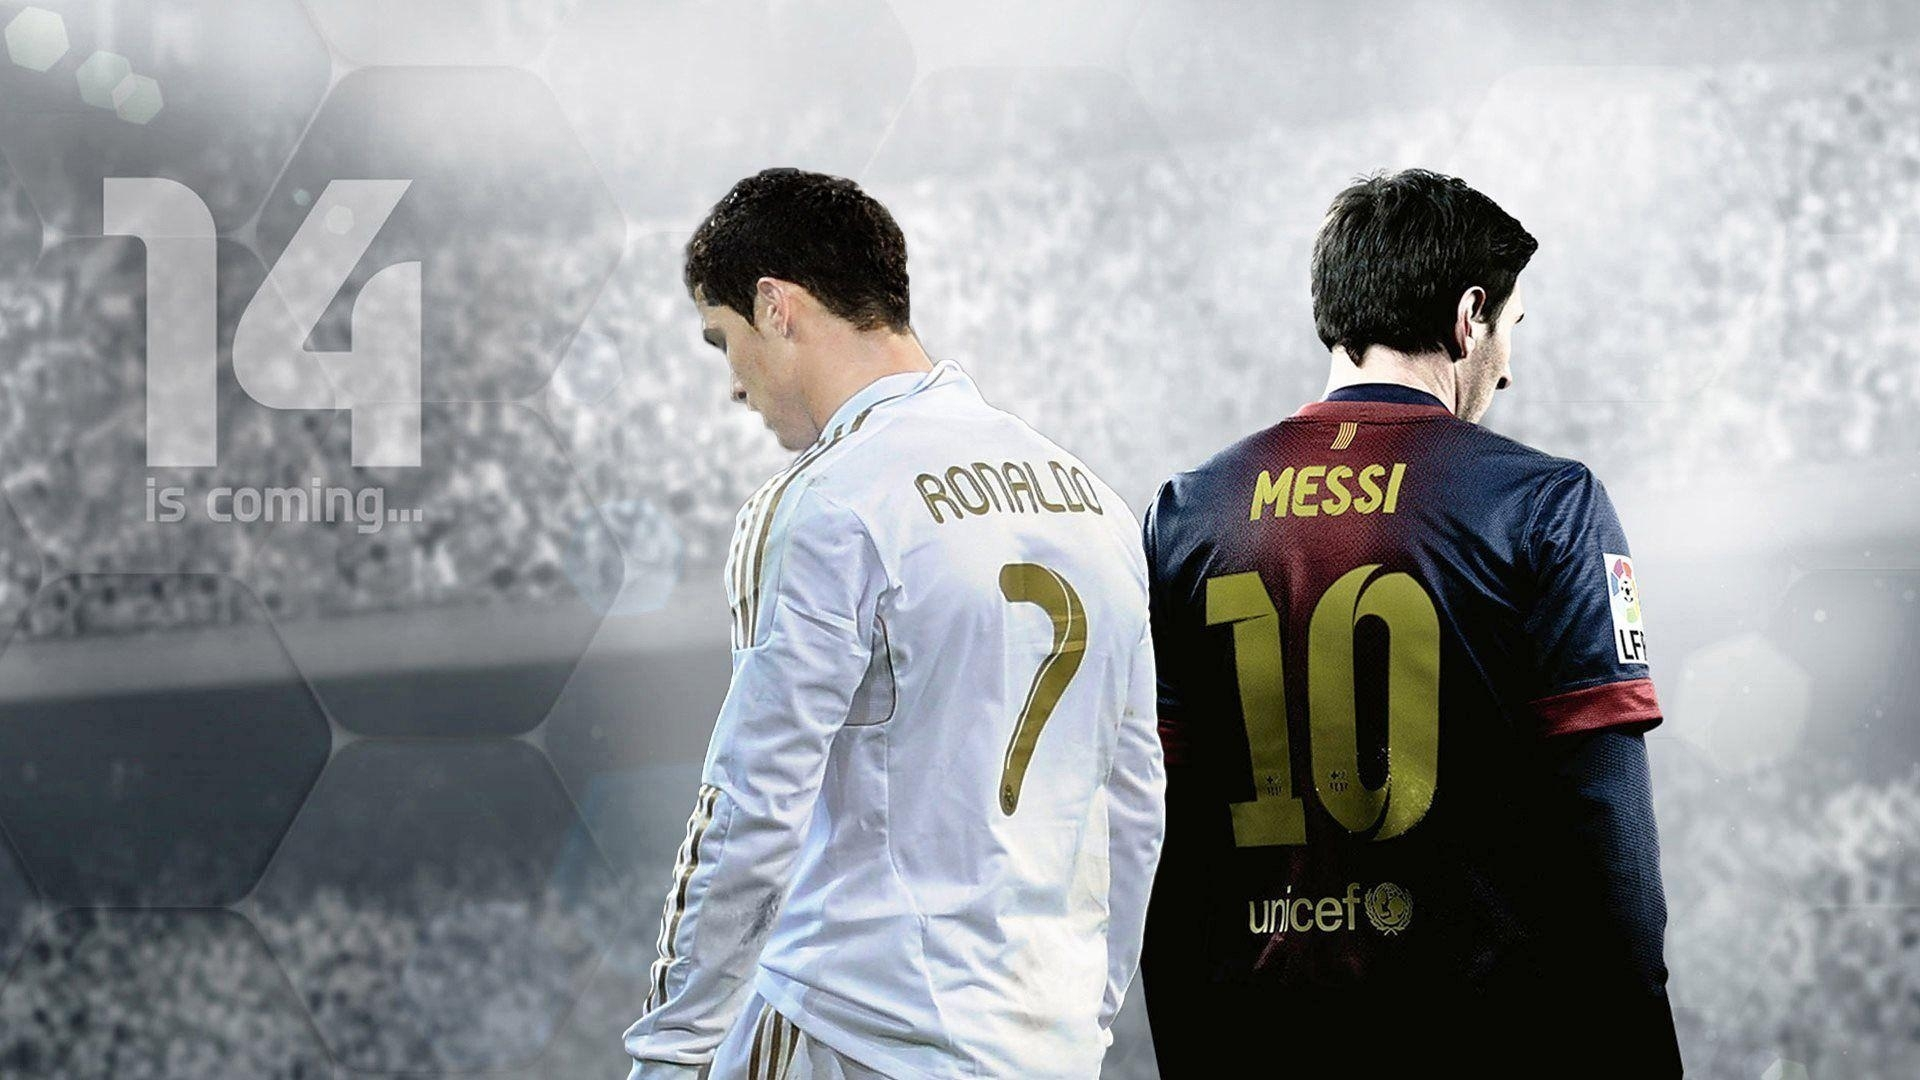 Title Messi Vs Ronaldo Wallpapers 2017 Hd Wallpaper Cave Dimension 1920 X 1080 File Type JPG JPEG